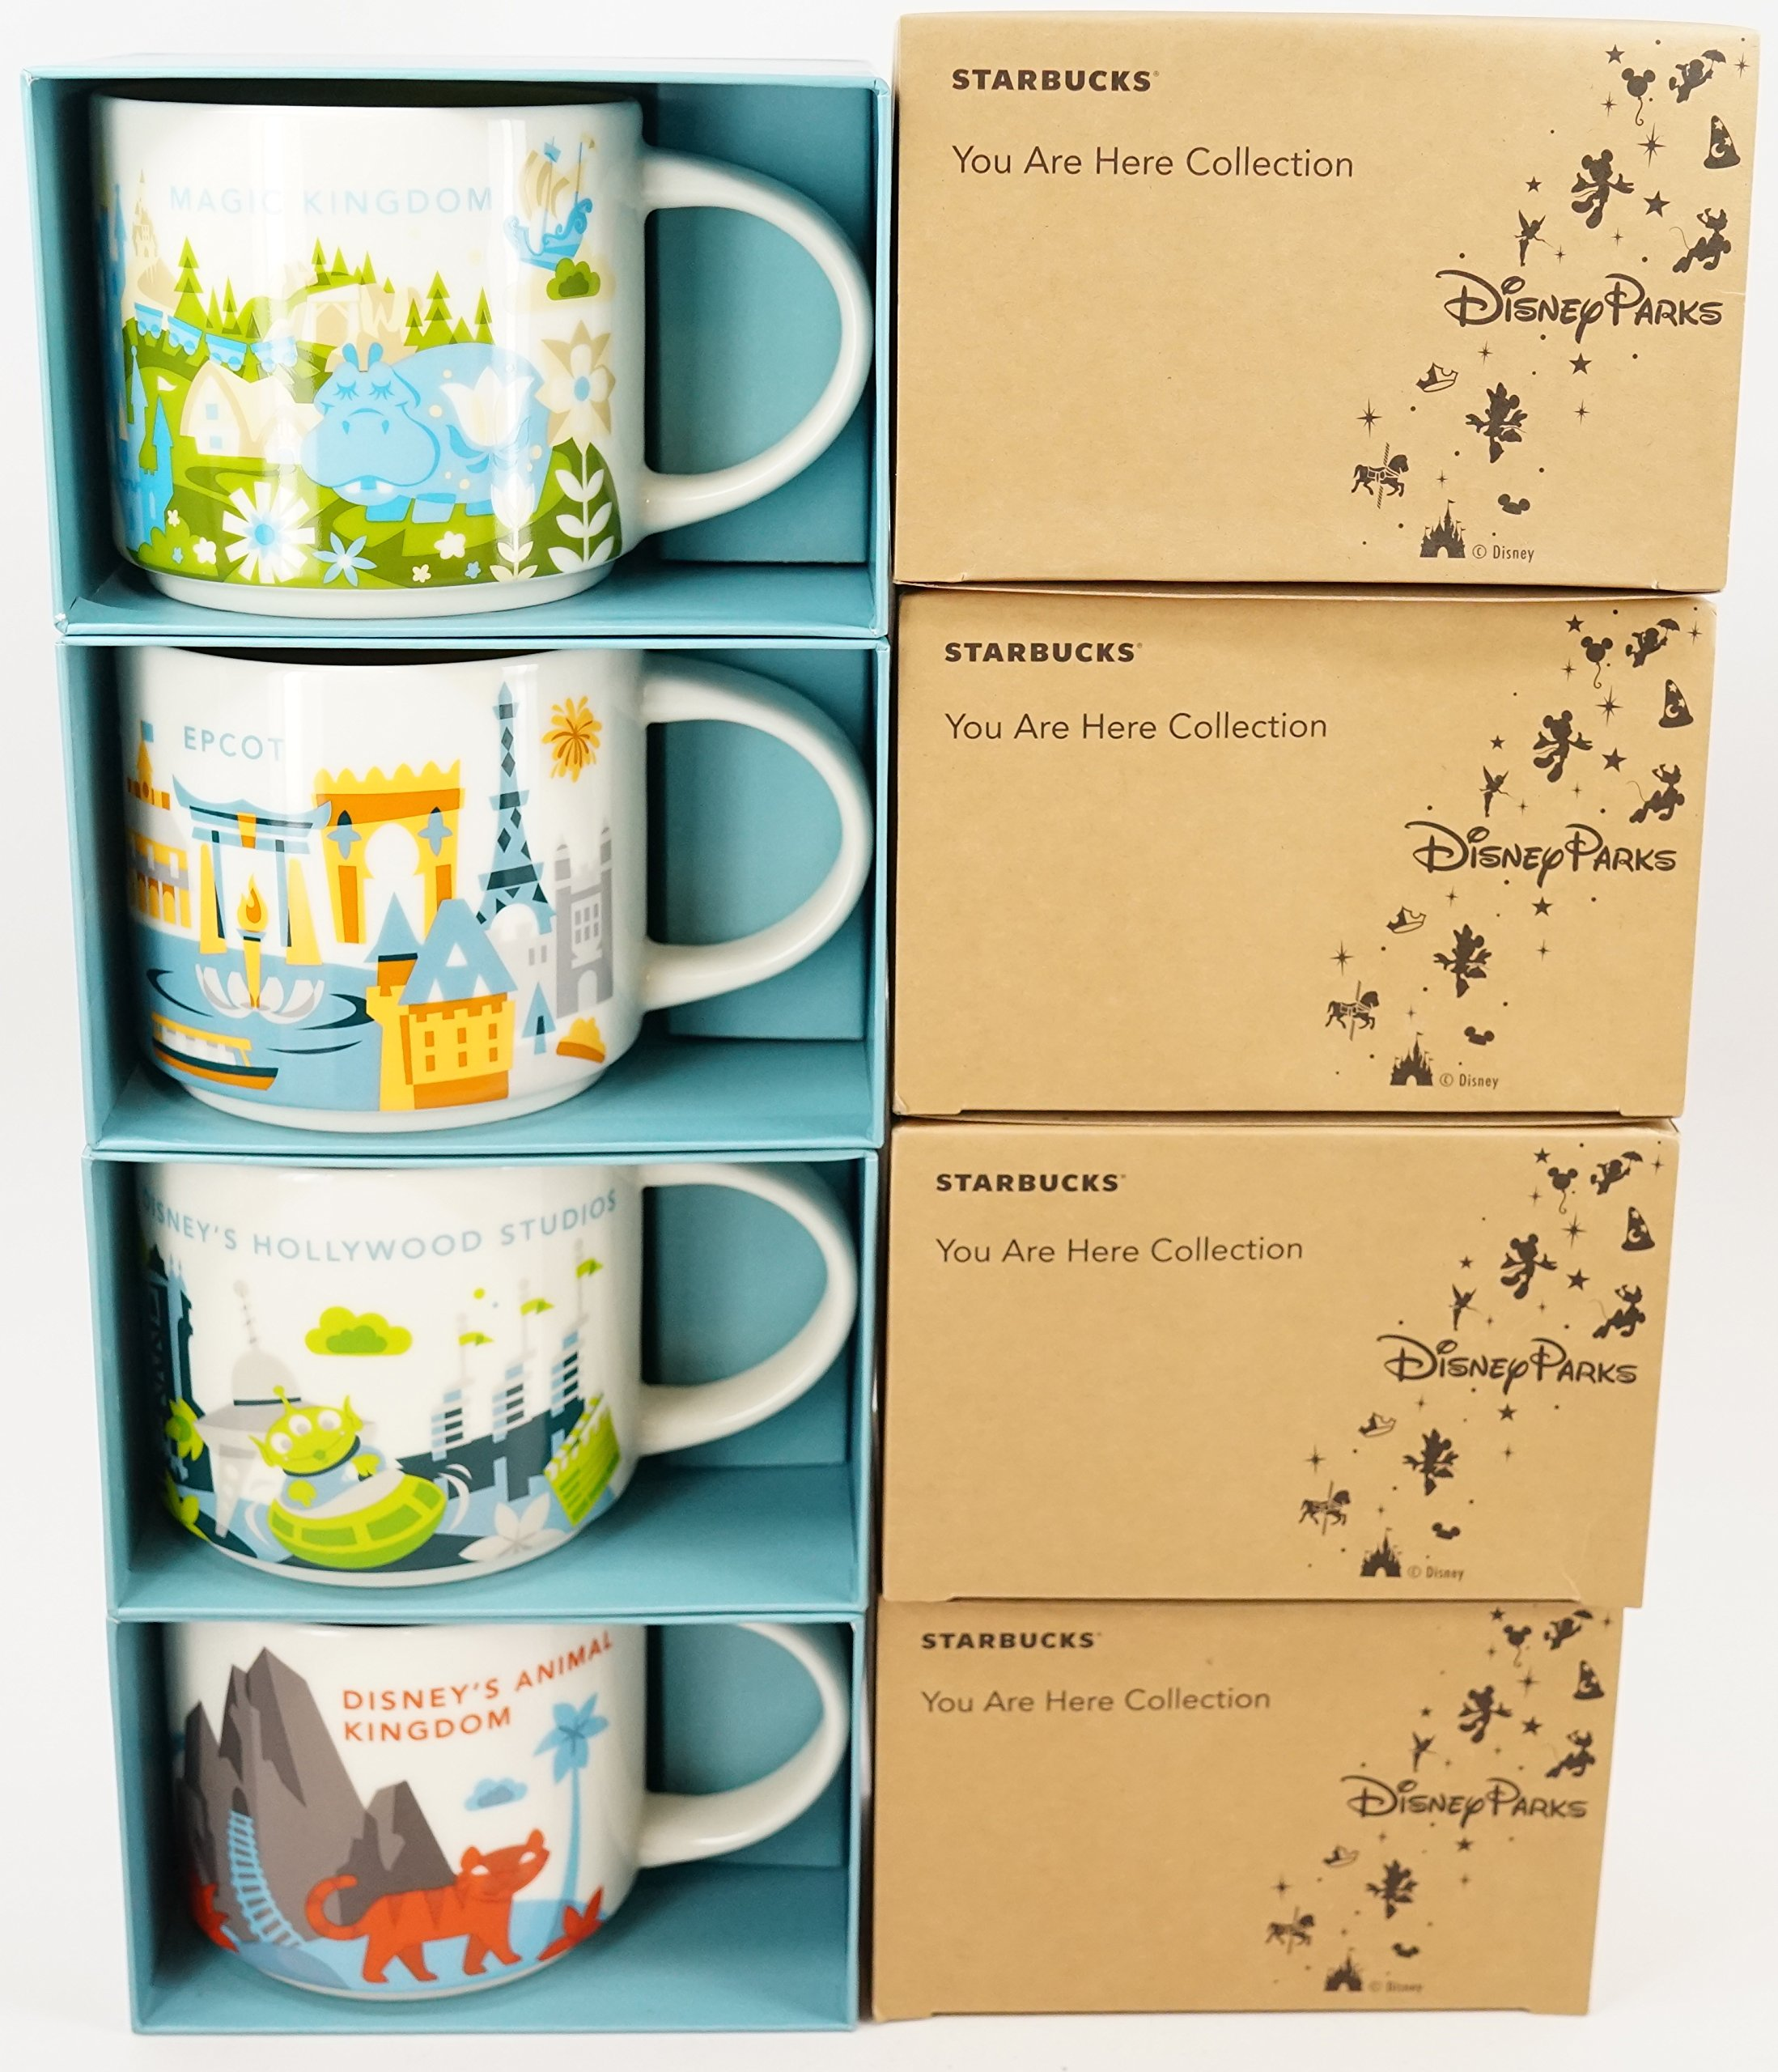 Set of 4: Disney's Animal Kingdom + Magic Kingdom + Hollywood Studios + Epcot 2017 Version You Are Here Starbucks Mugs by Starbucks